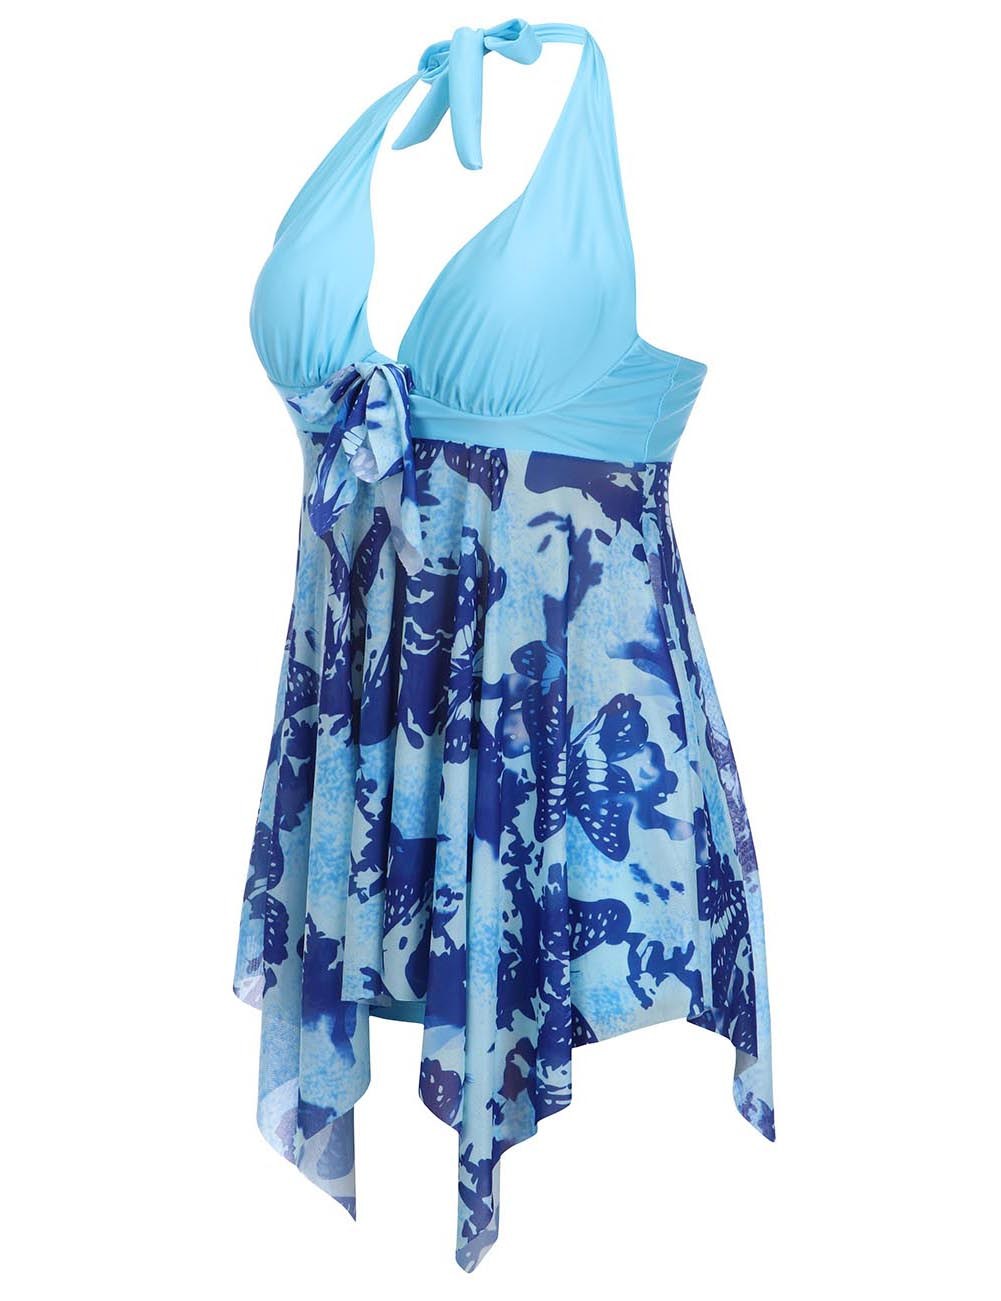 //cdn.affectcloud.com/hexinfashion/upload/imgs/Swimwear/Tankini/F195157-BU1/F195157-BU1-201911065dc272638e8fc.jpg